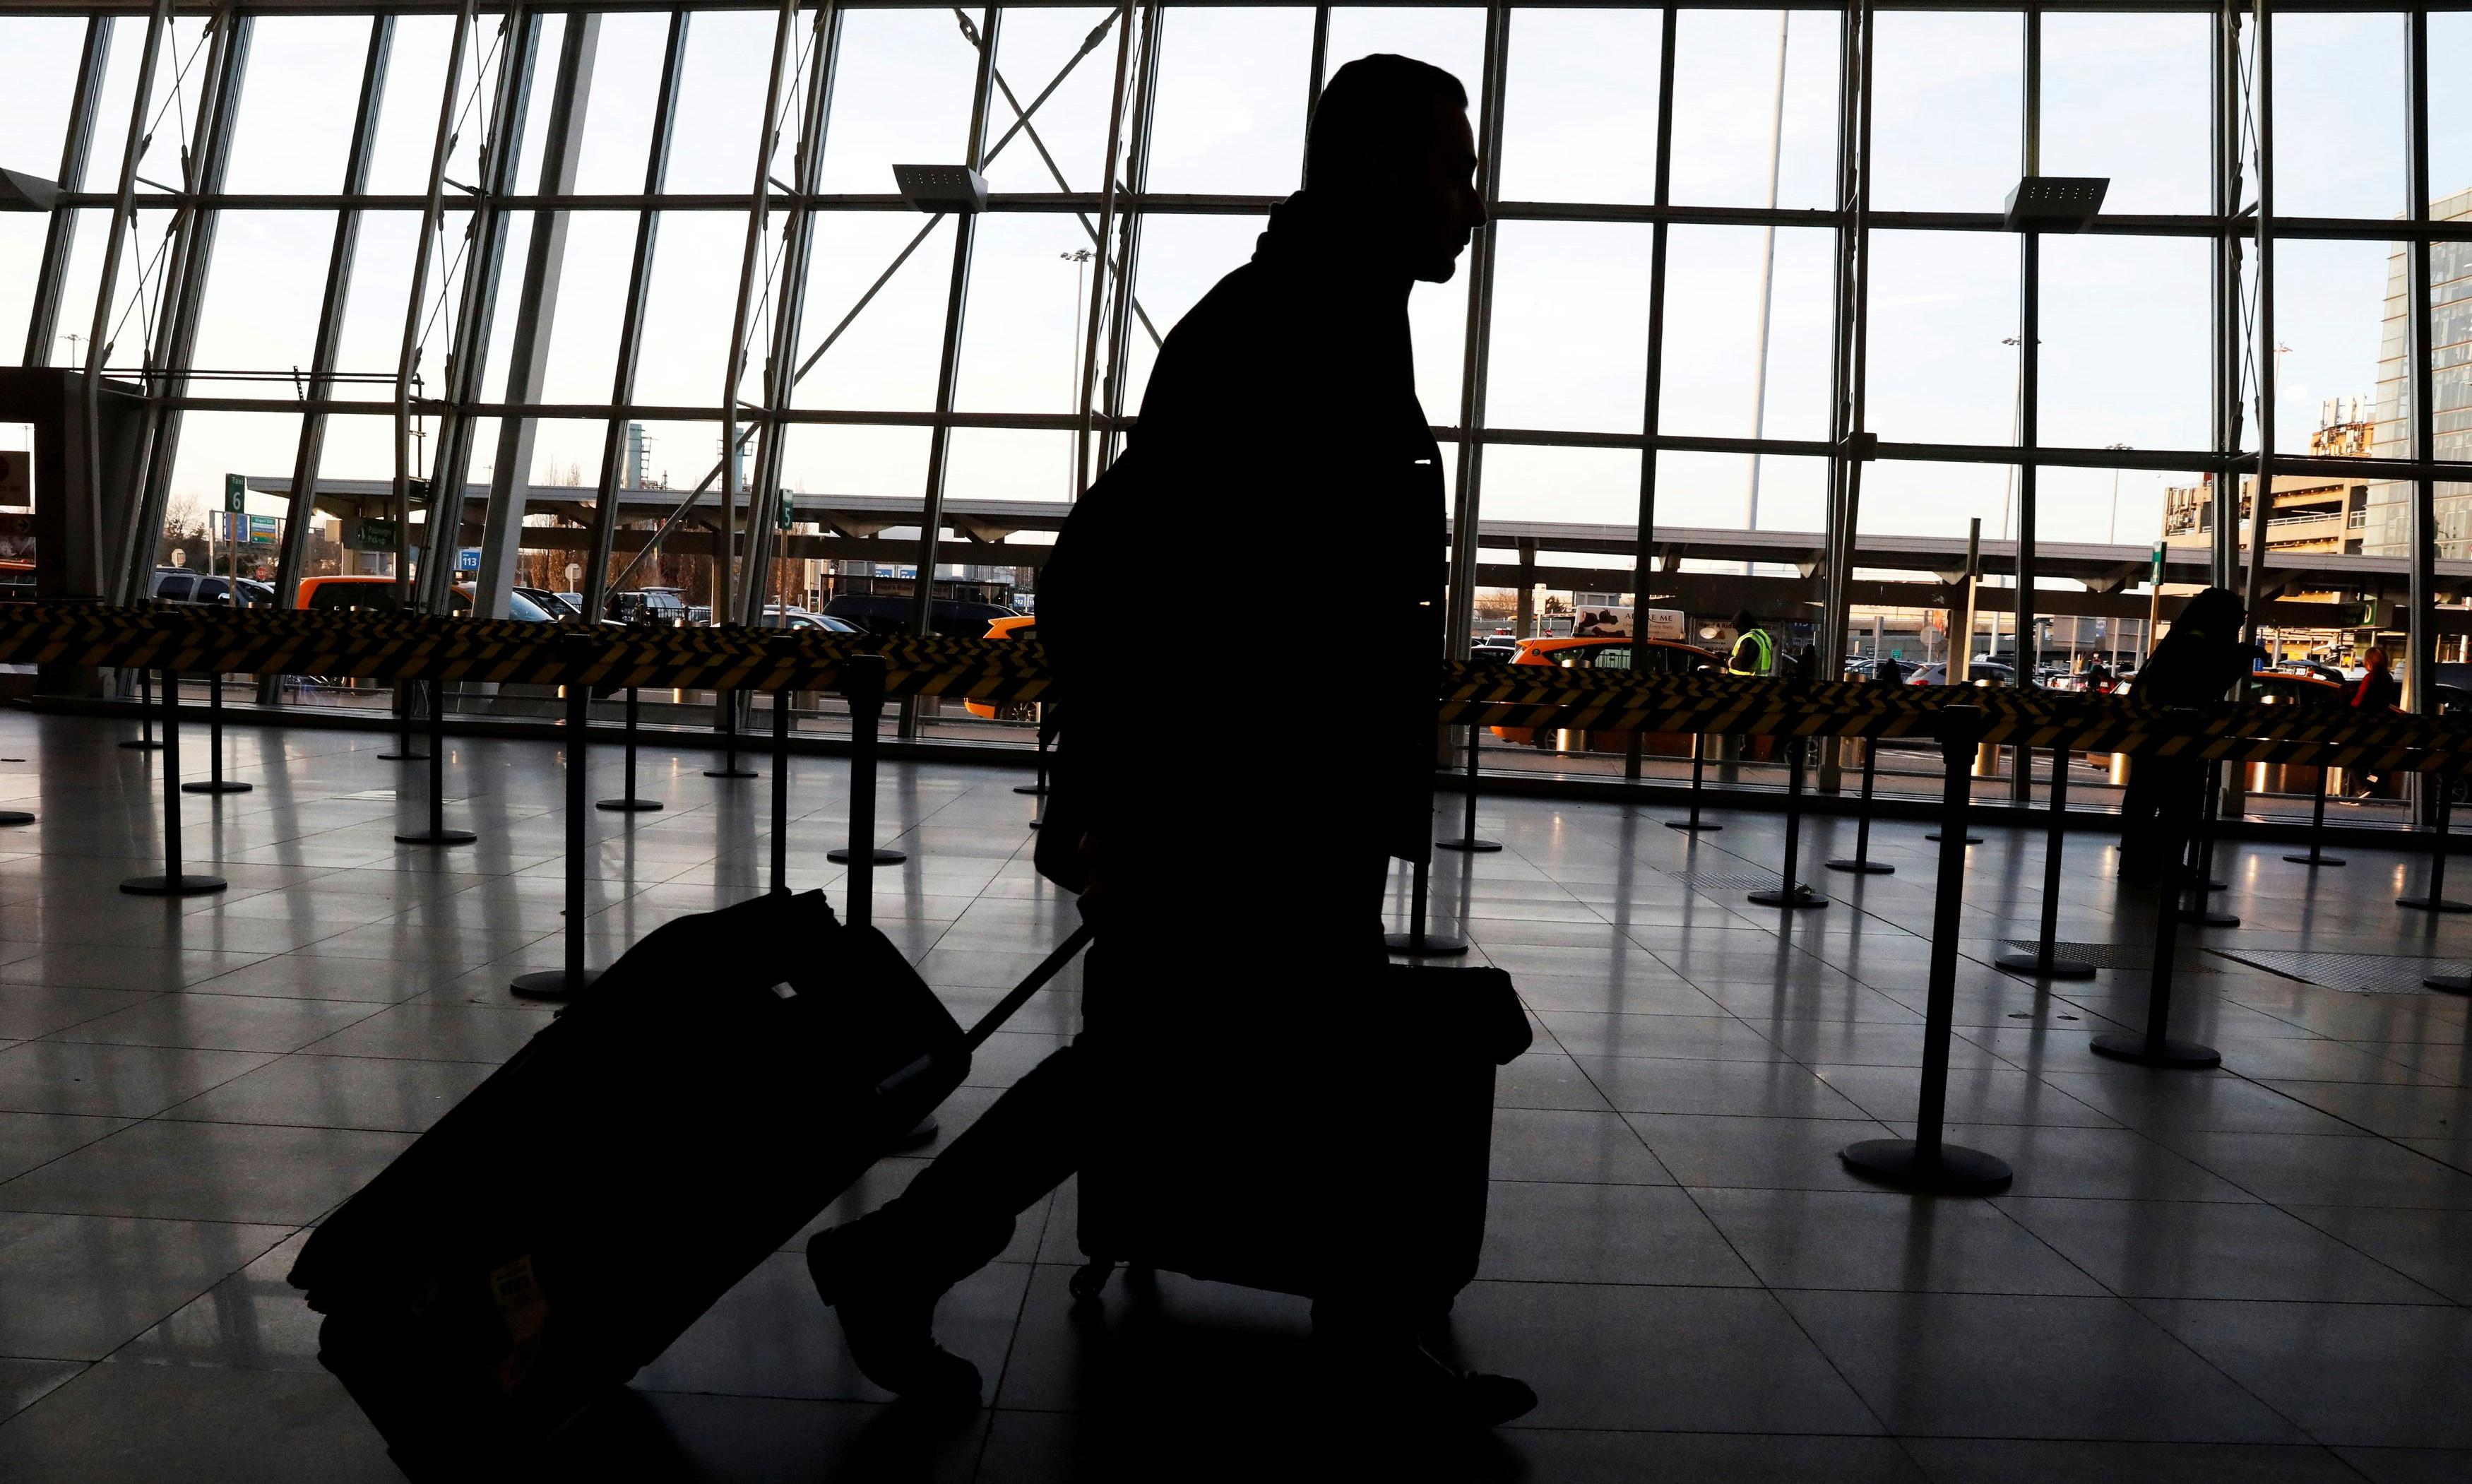 Coronavirus: what airport measures are in place to detect sick passengers?